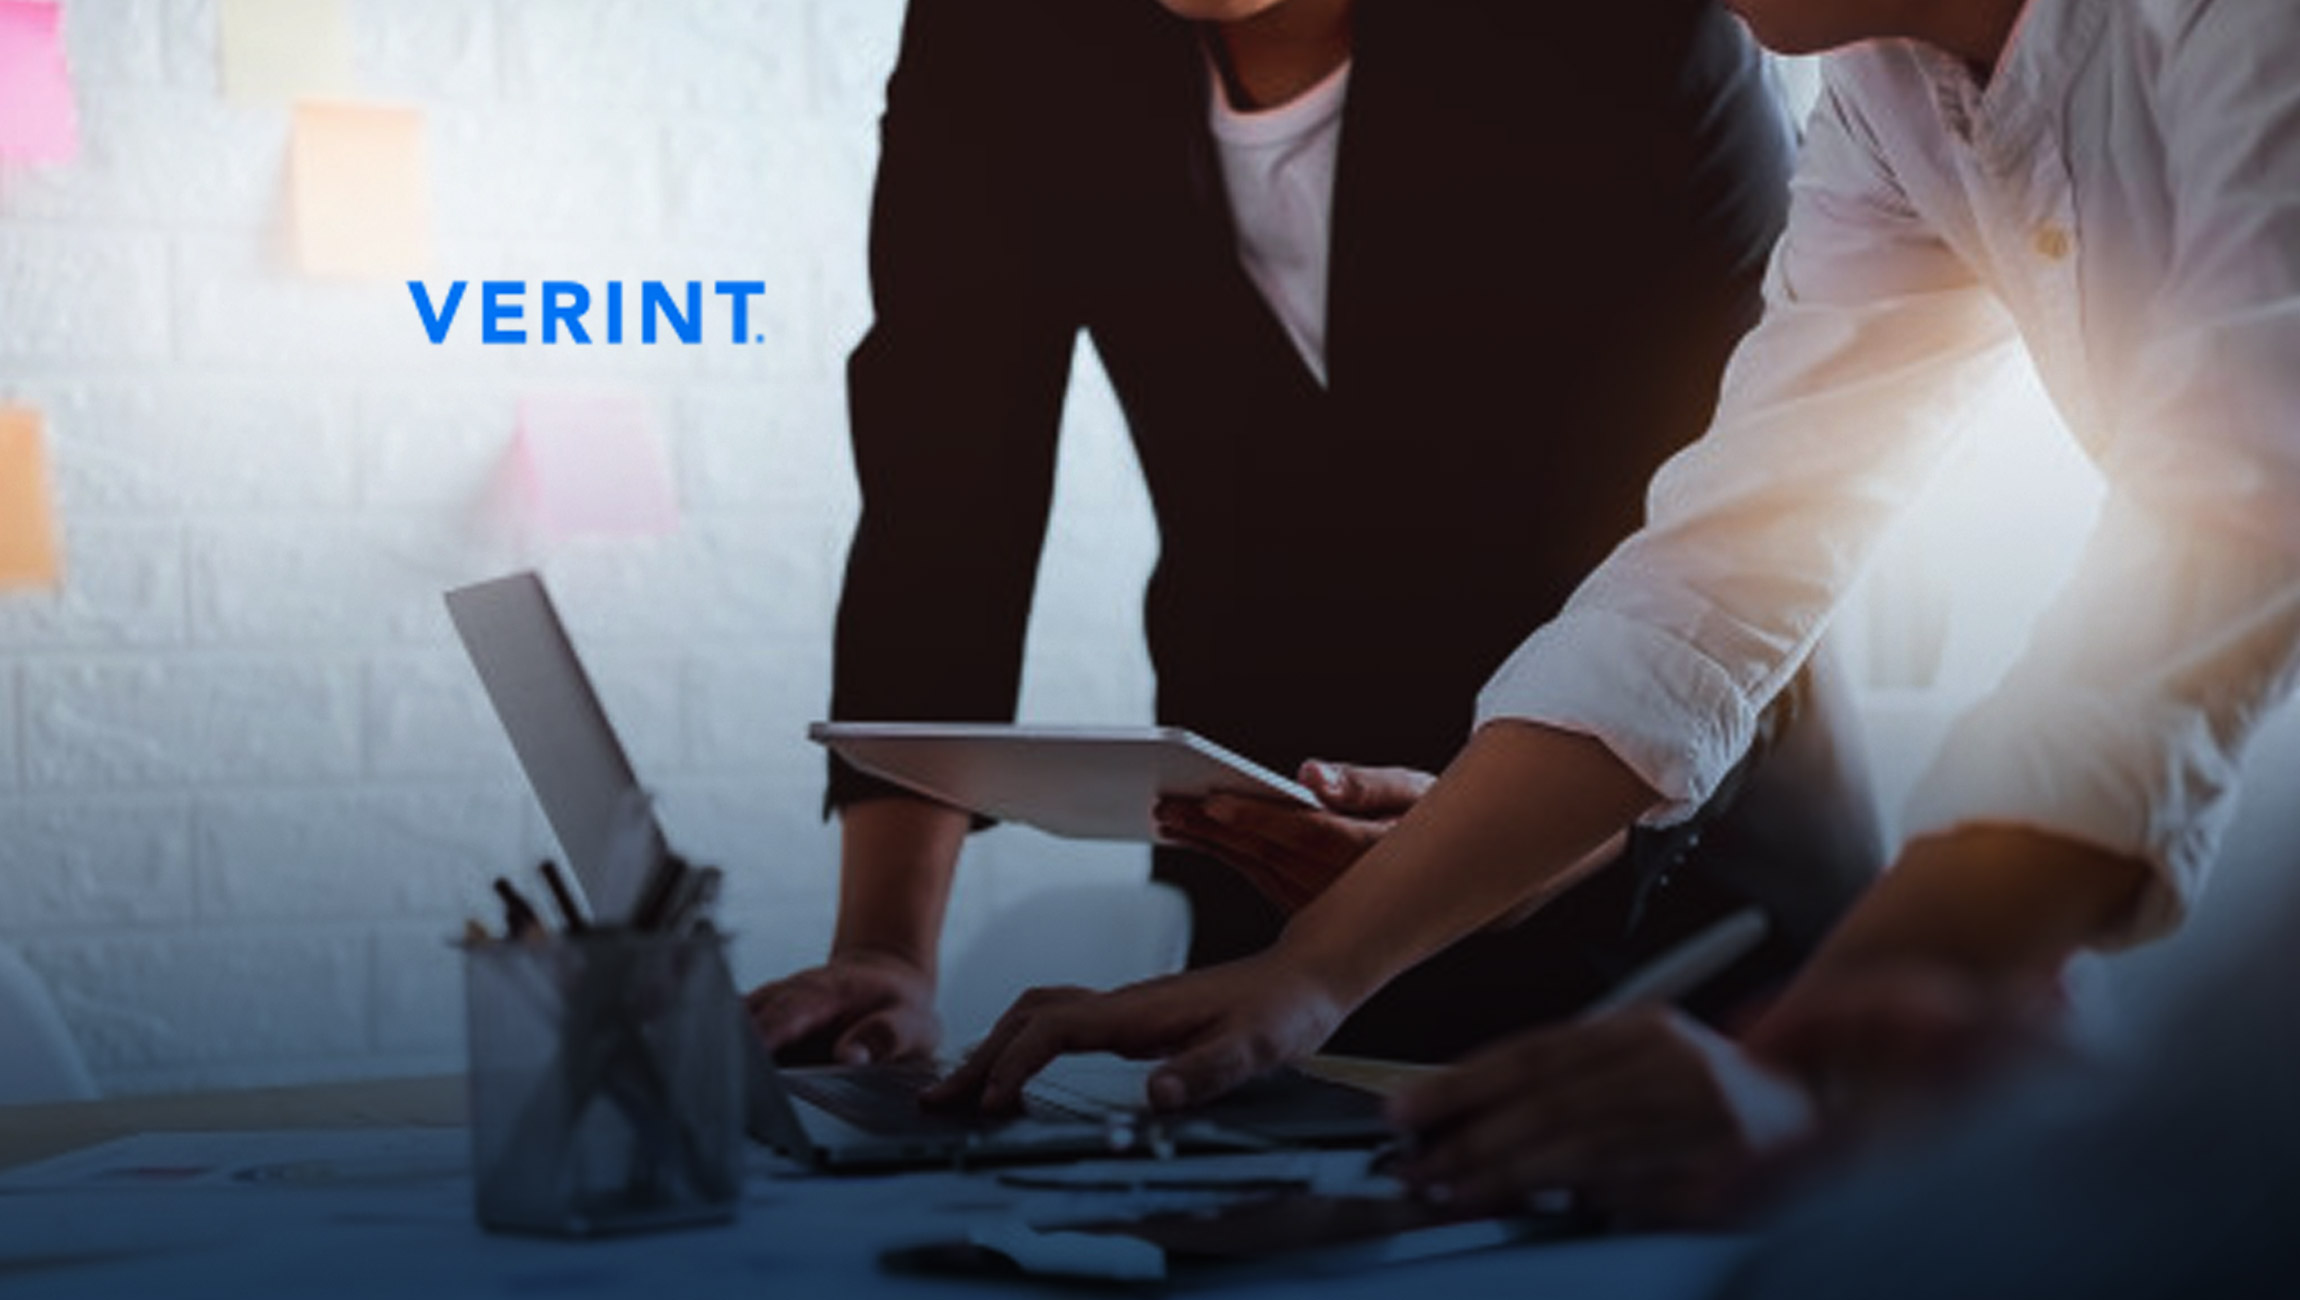 May Events Center on How Verint Cloud Technology Can Help Companies Achieve Boundless Customer Engagement